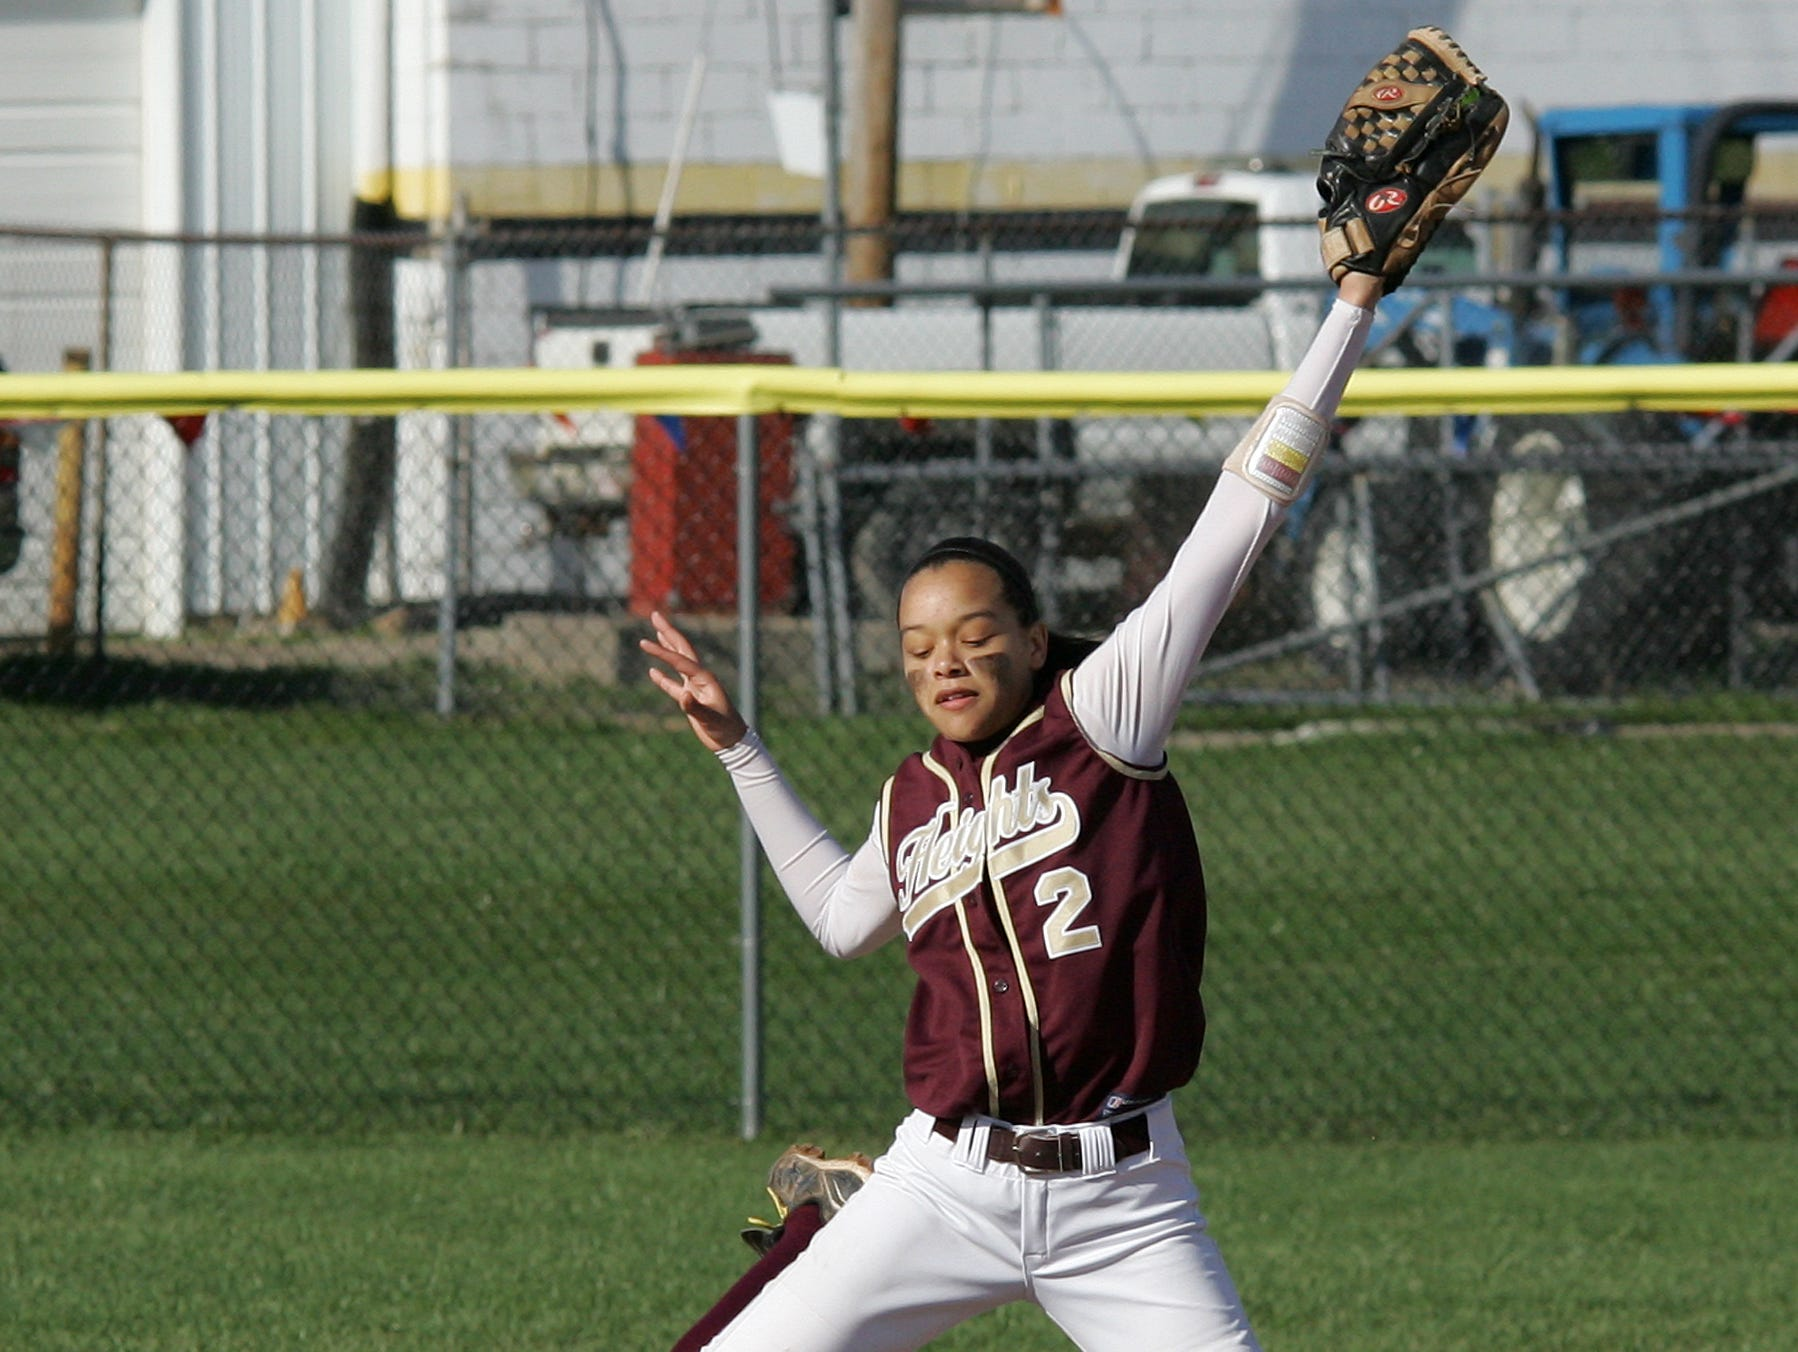 Watkins Memorial's Baylee Small slides under Licking Heights' Kayla Myrthil at second base Friday during Watkins' 14-11 victory. The Warriors trailed 11-3 in the fifth inning before rallying.